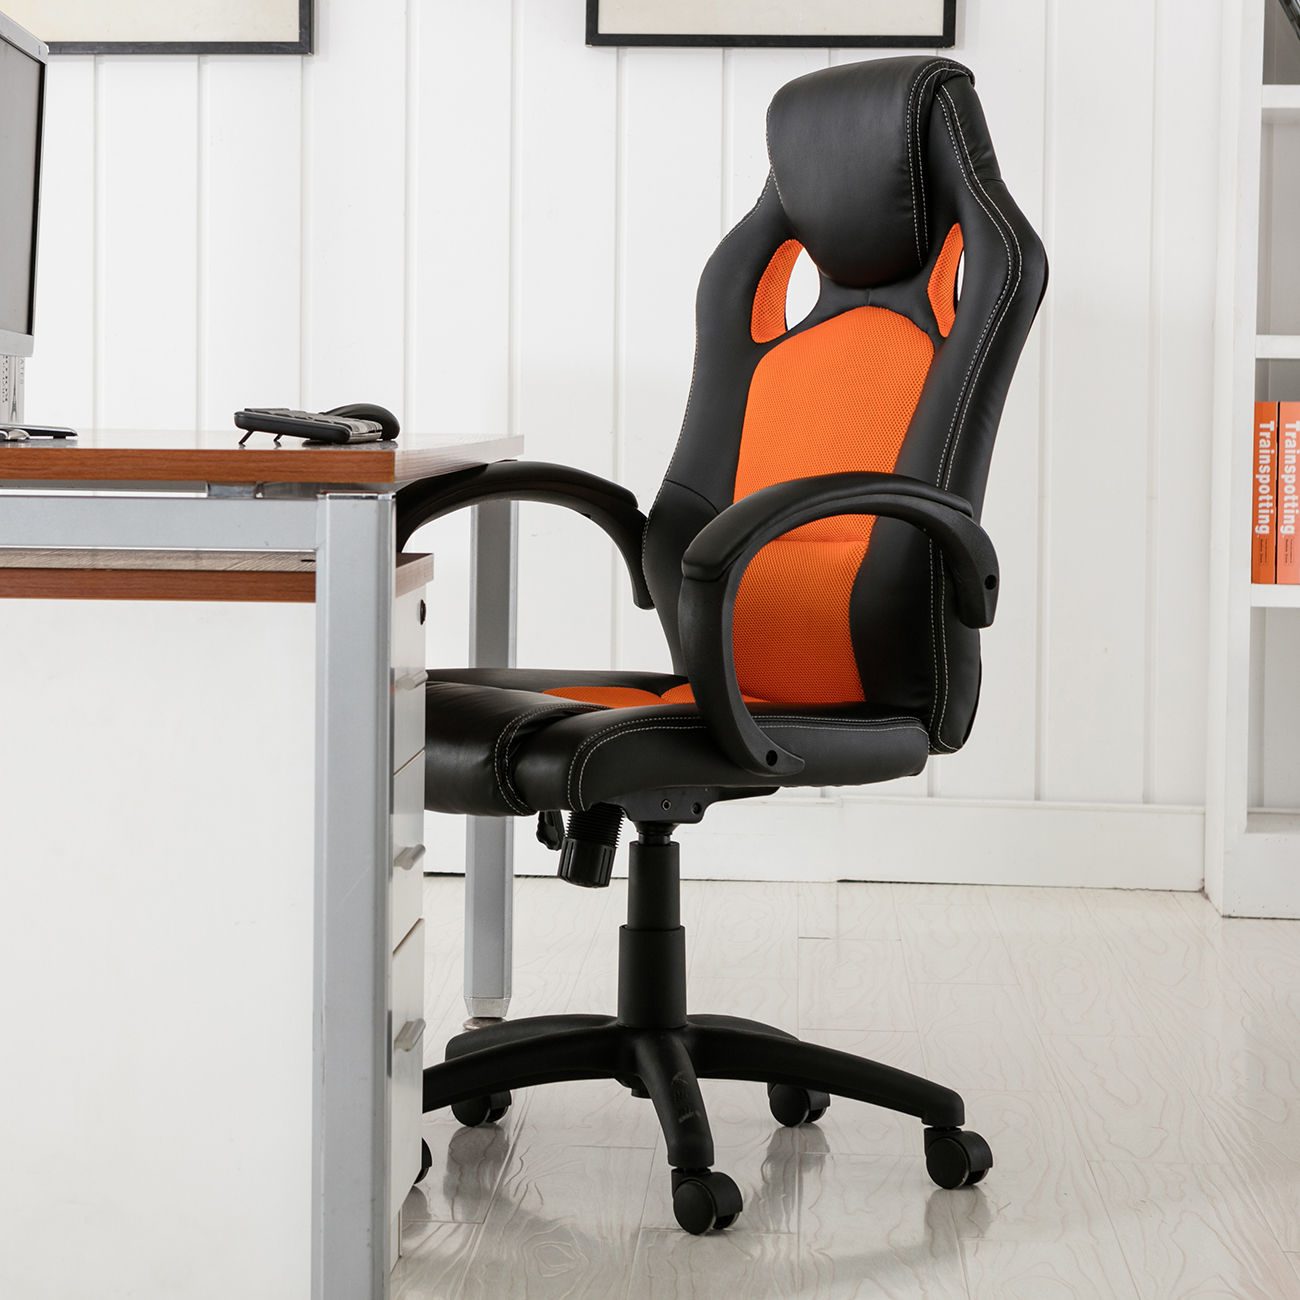 Racing Seat Office Chair Office Gaming Chair